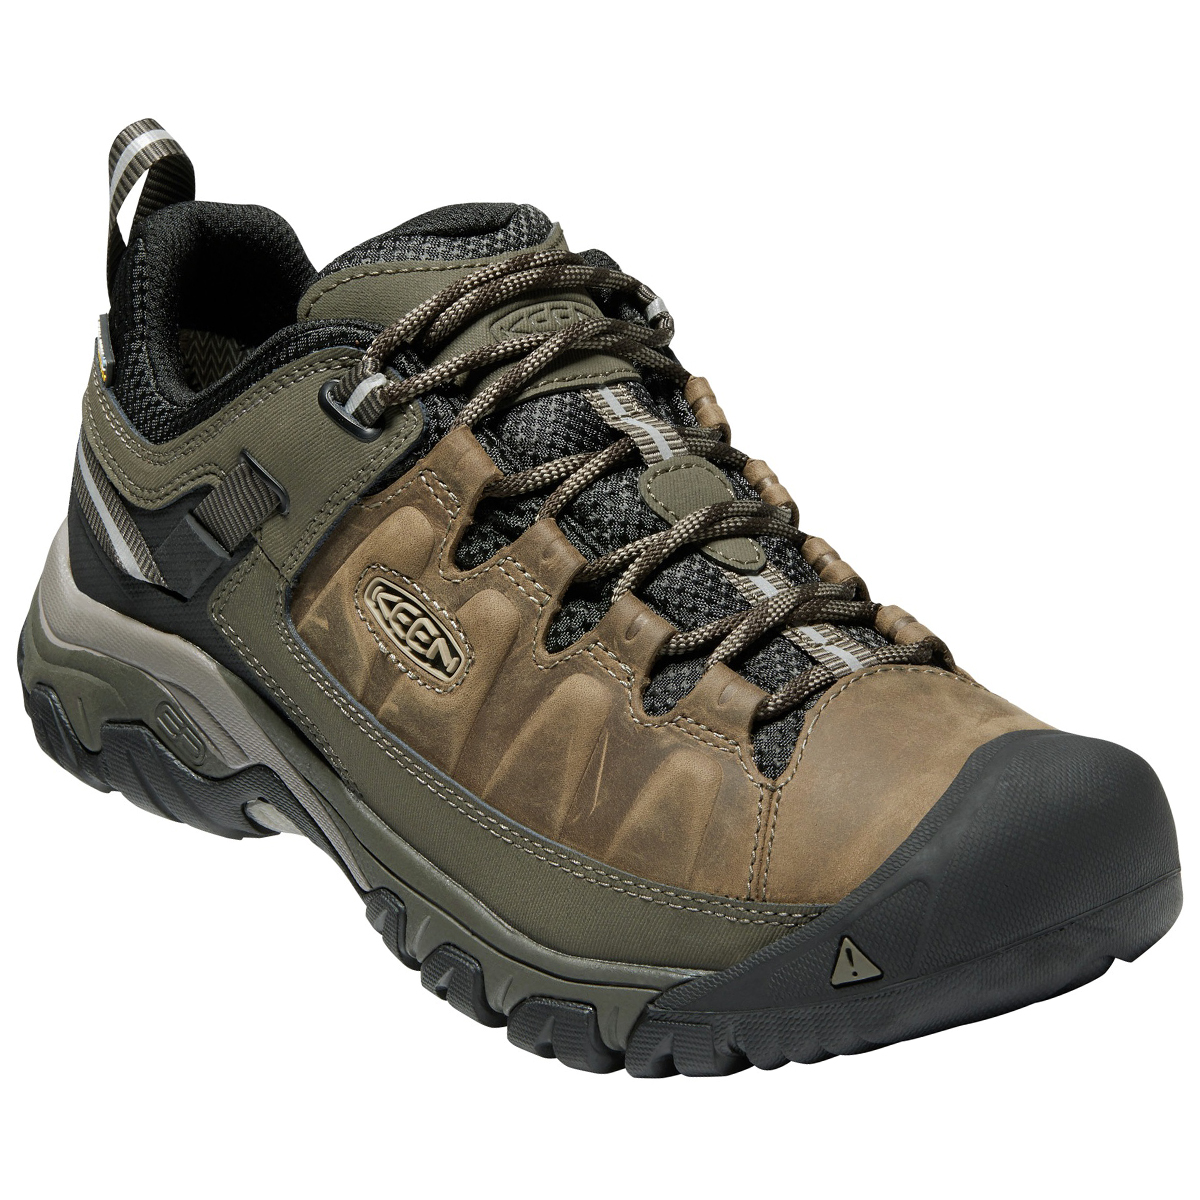 Keen Men's Targhee Iii Waterproof Low Hiking Shoes - Brown, 11